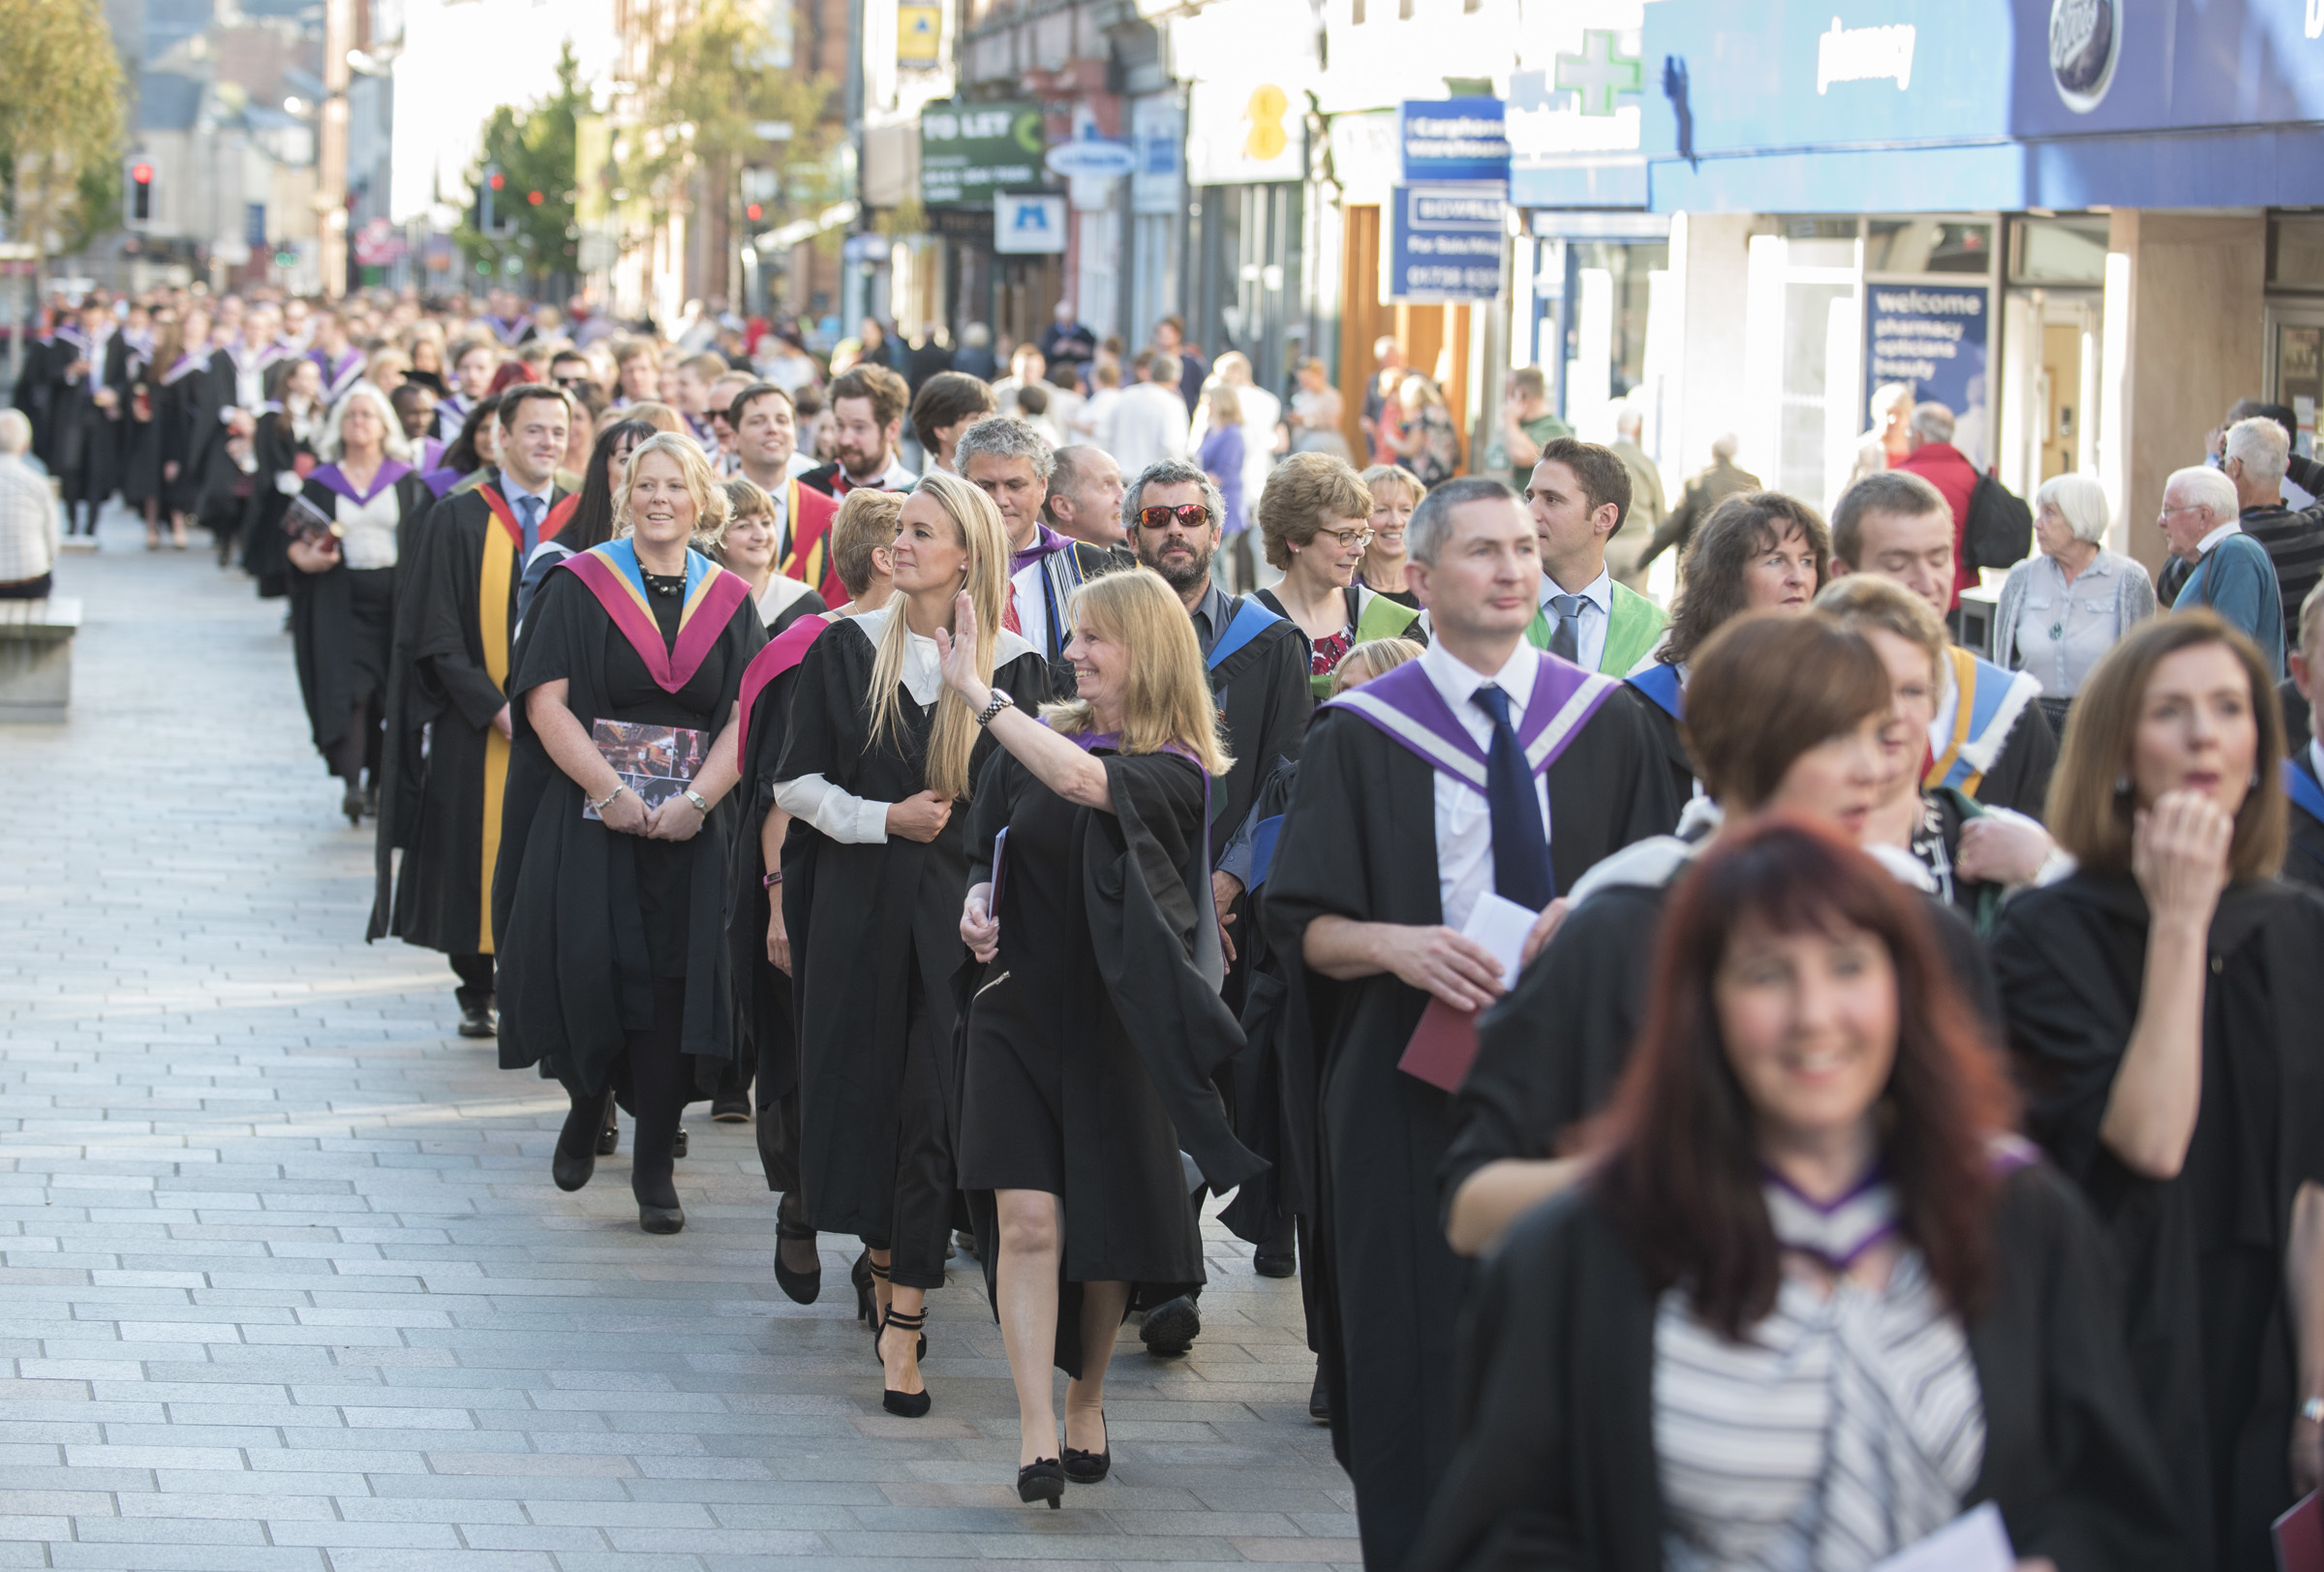 Last year's Perth academic procession marches  through the city.